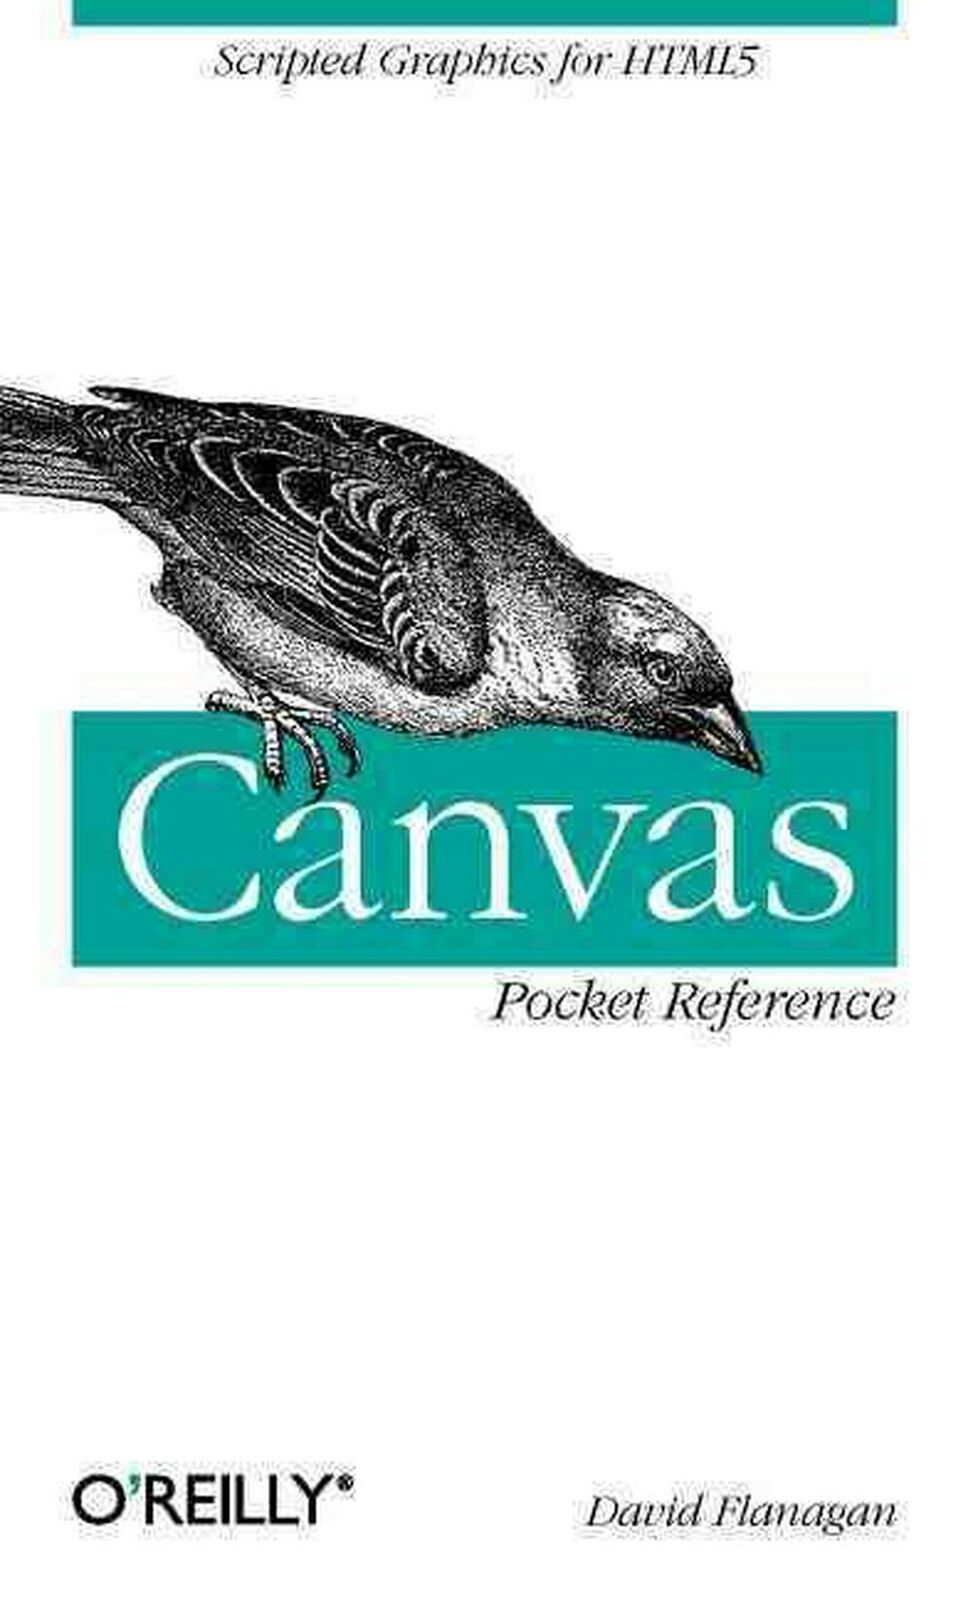 Canvas Pocket Reference: Scripted Graphics for HTML5 by David Flanagan (English) |